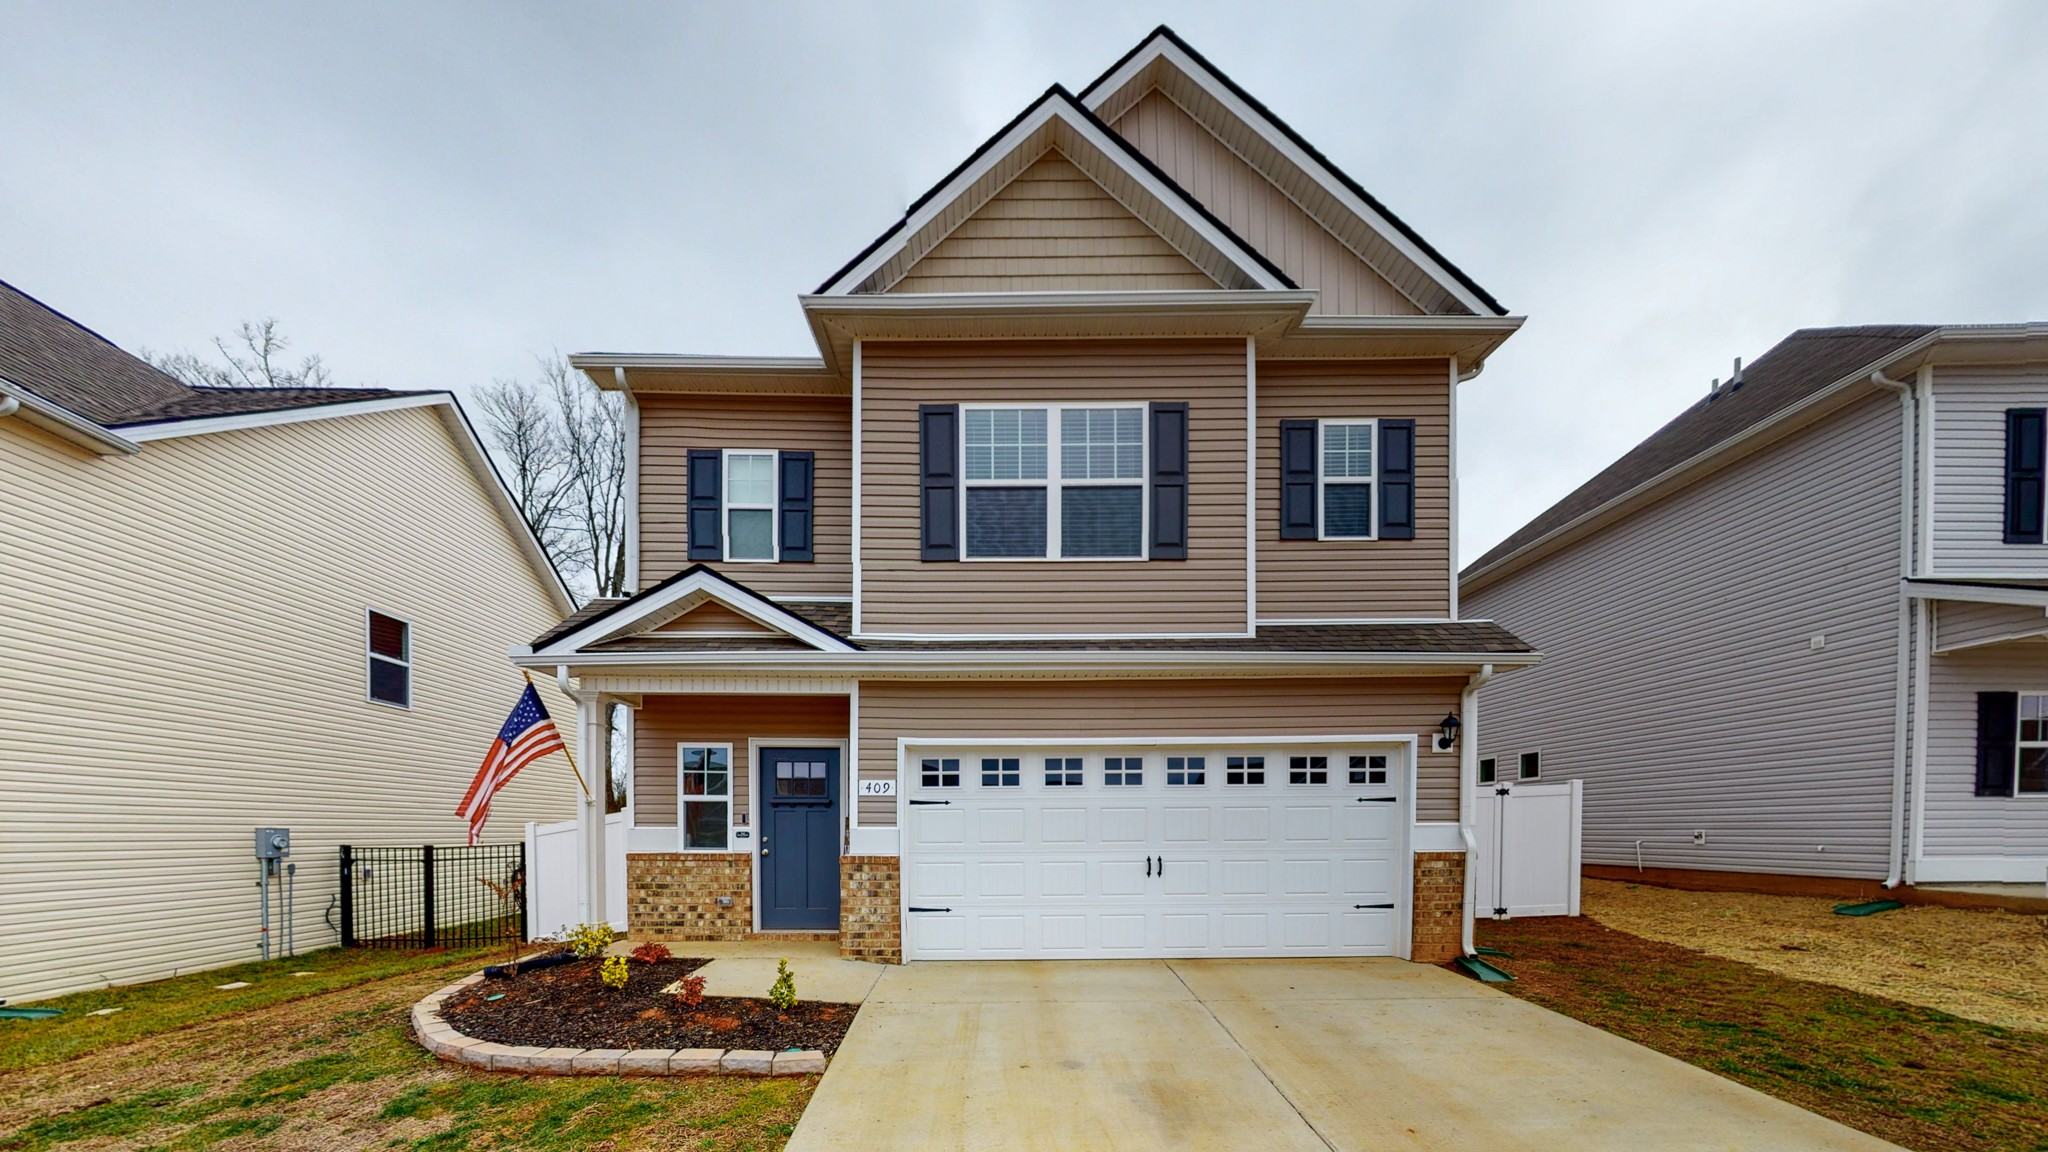 409 Tines Dr Property Photo - Shelbyville, TN real estate listing